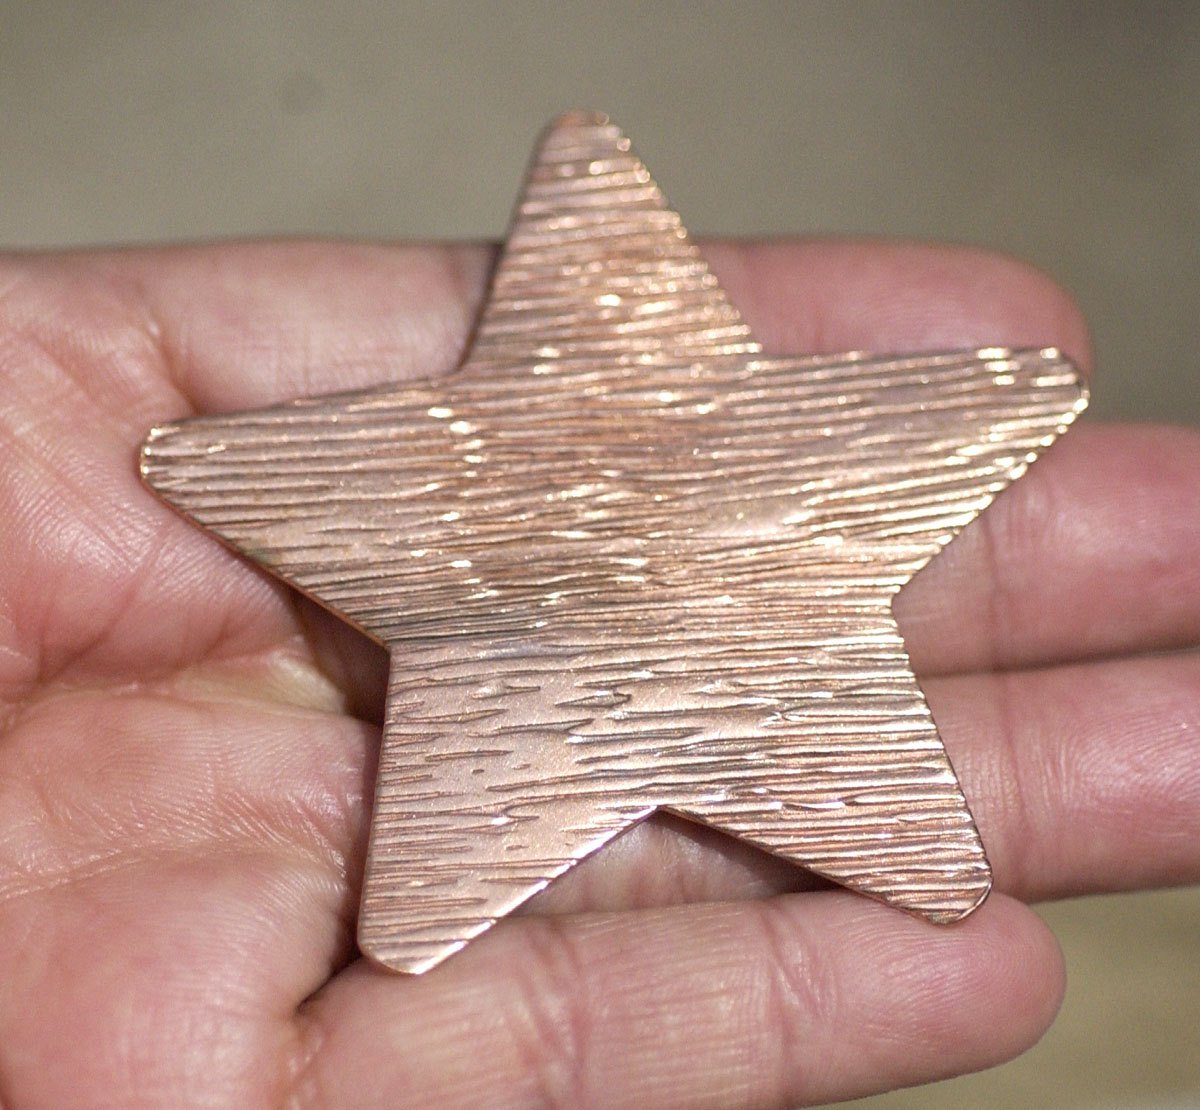 Large Star 62mm Woodgrain Pattern Cutout for Enameling Stamping Texturing Soldering Blanks Variety of Metals - 2 pieces